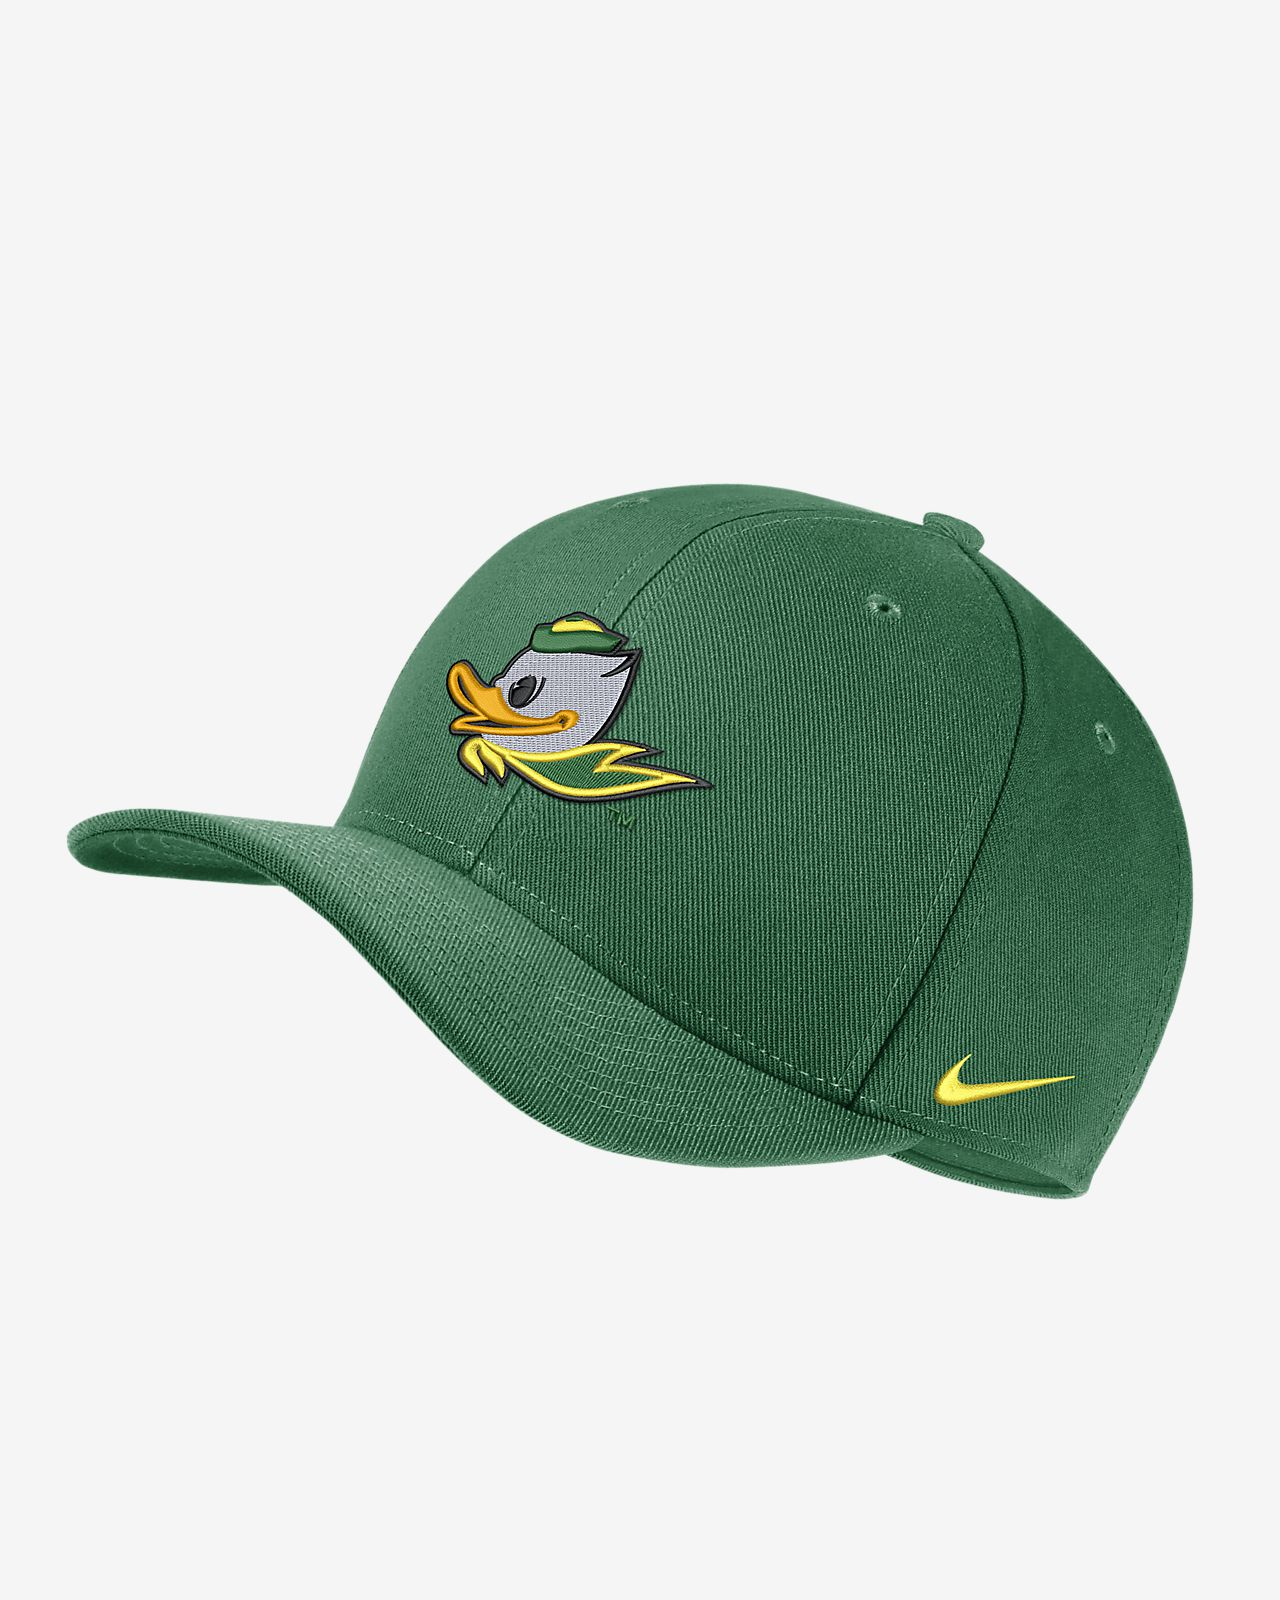 1d2e9320c3f Nike College Dri-FIT Classic99 Swoosh Flex (Oregon) Fitted Hat. Nike.com